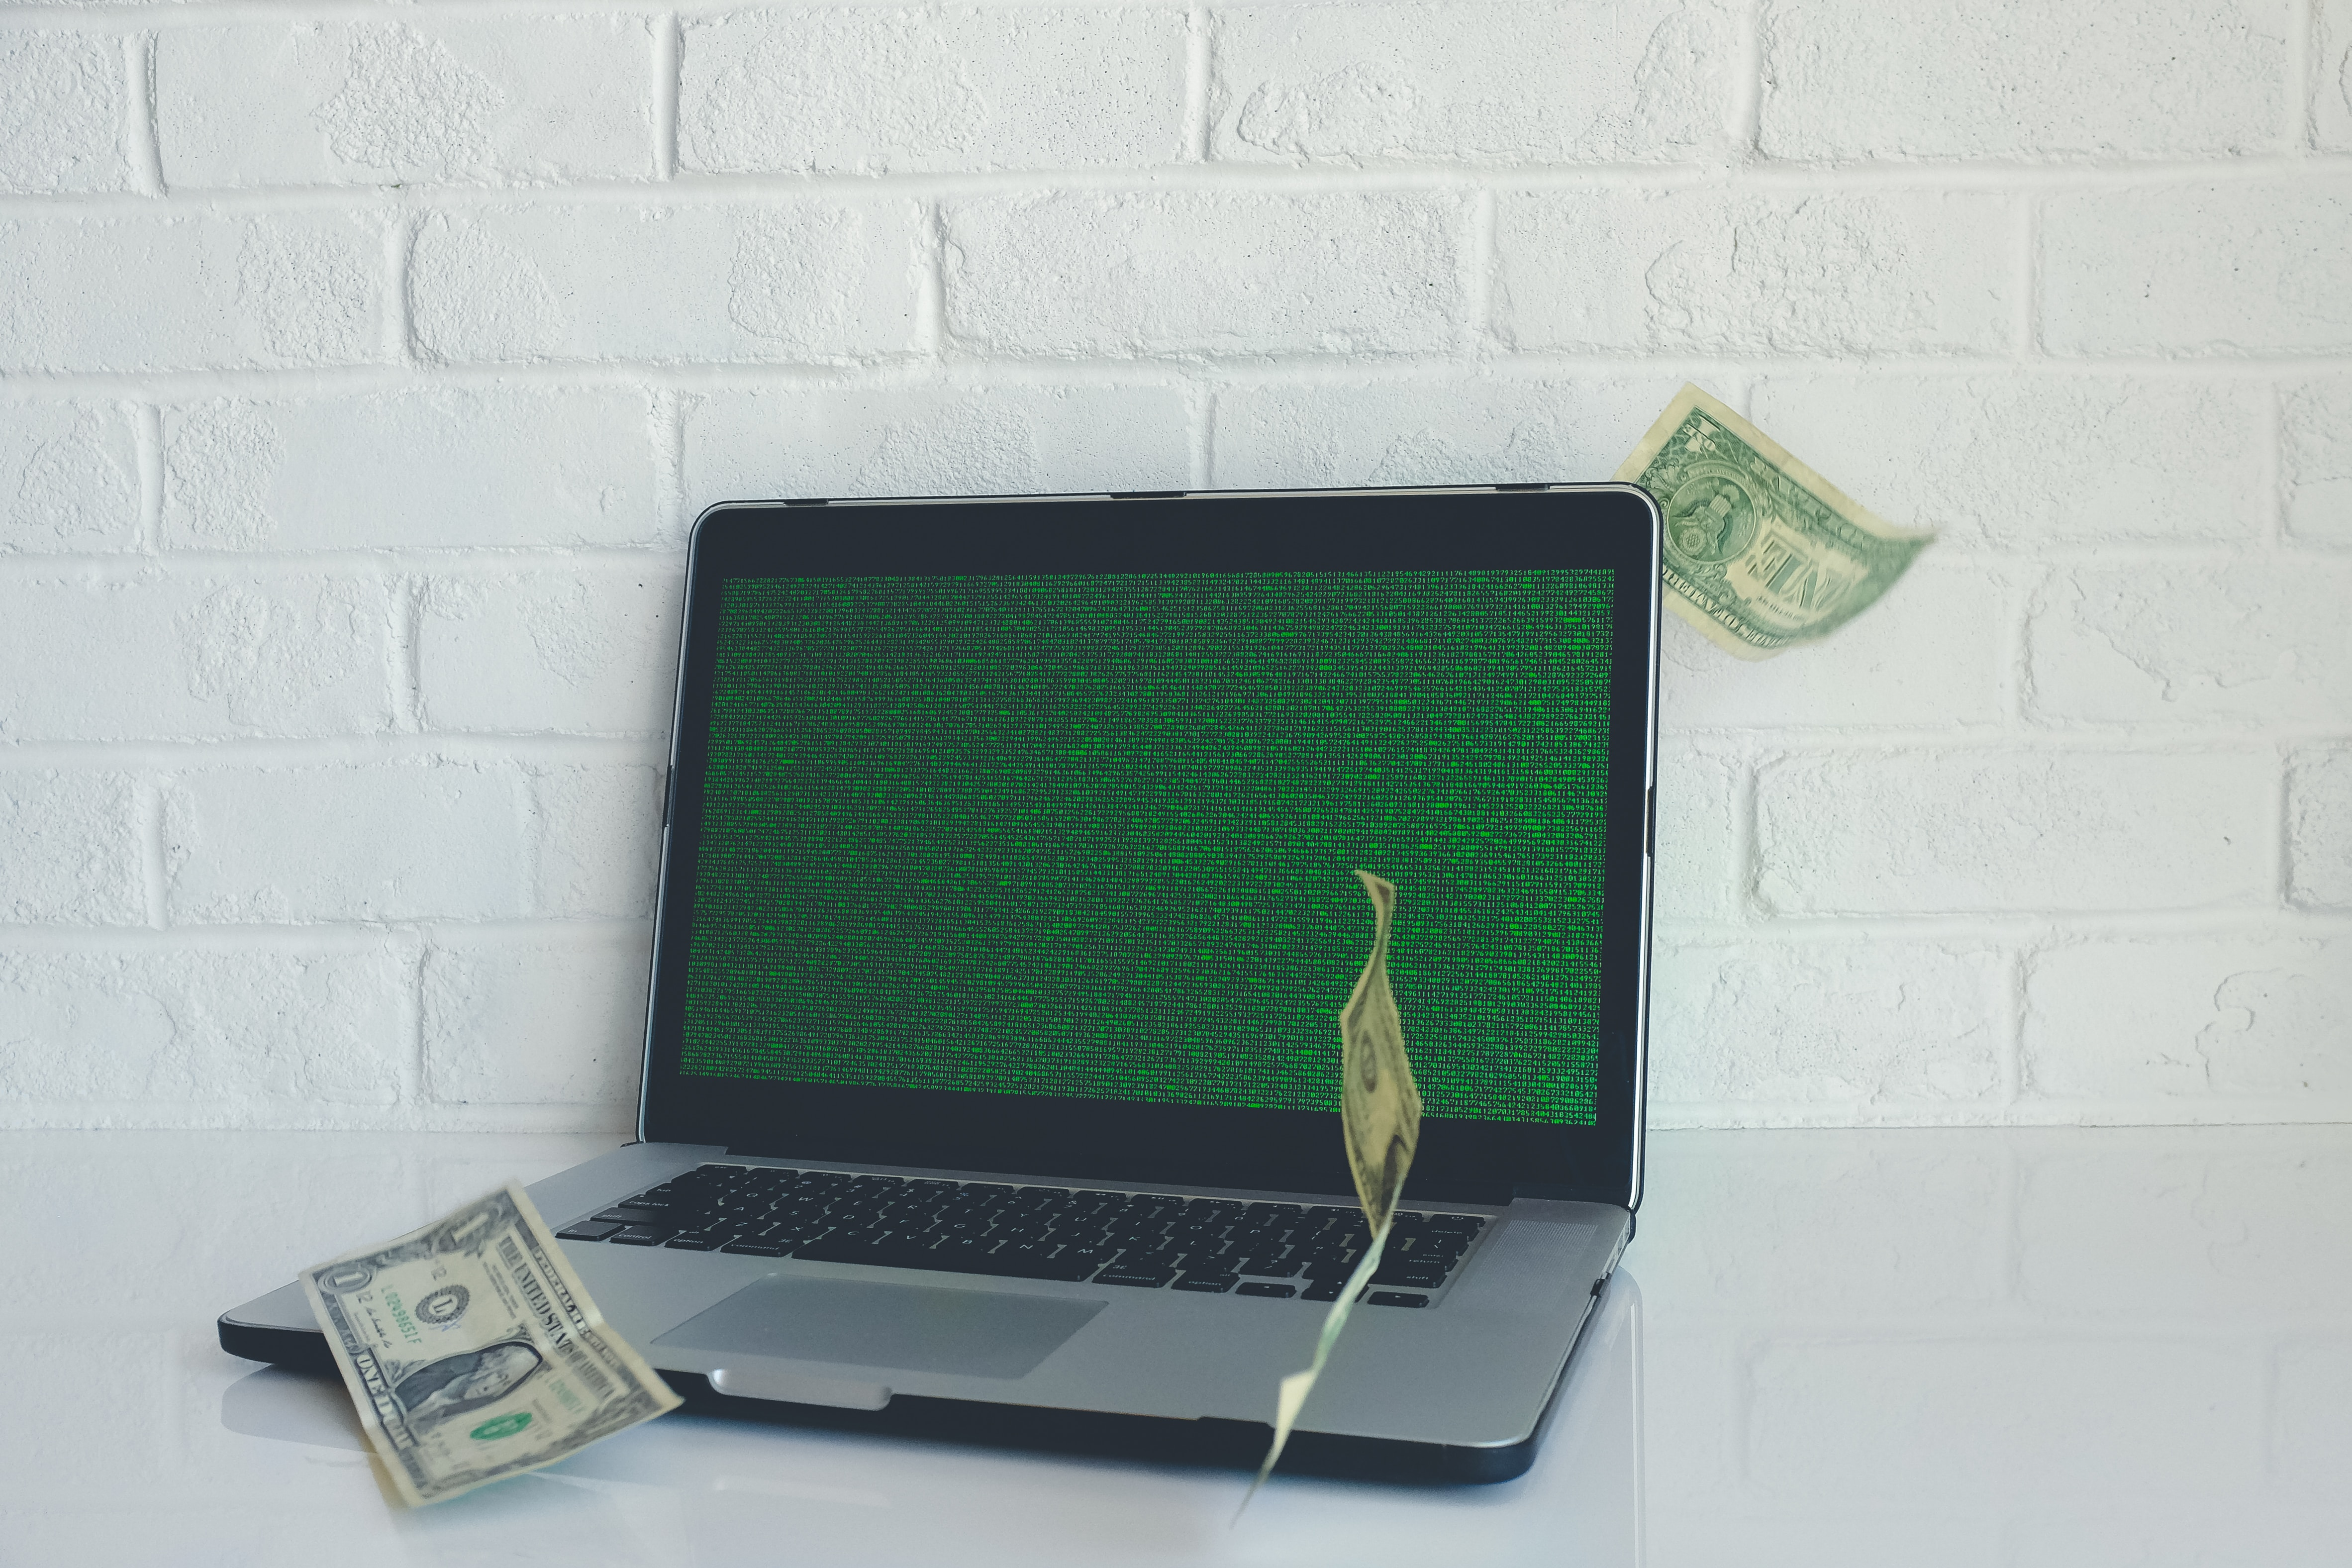 online business without investment computer spitting out cash